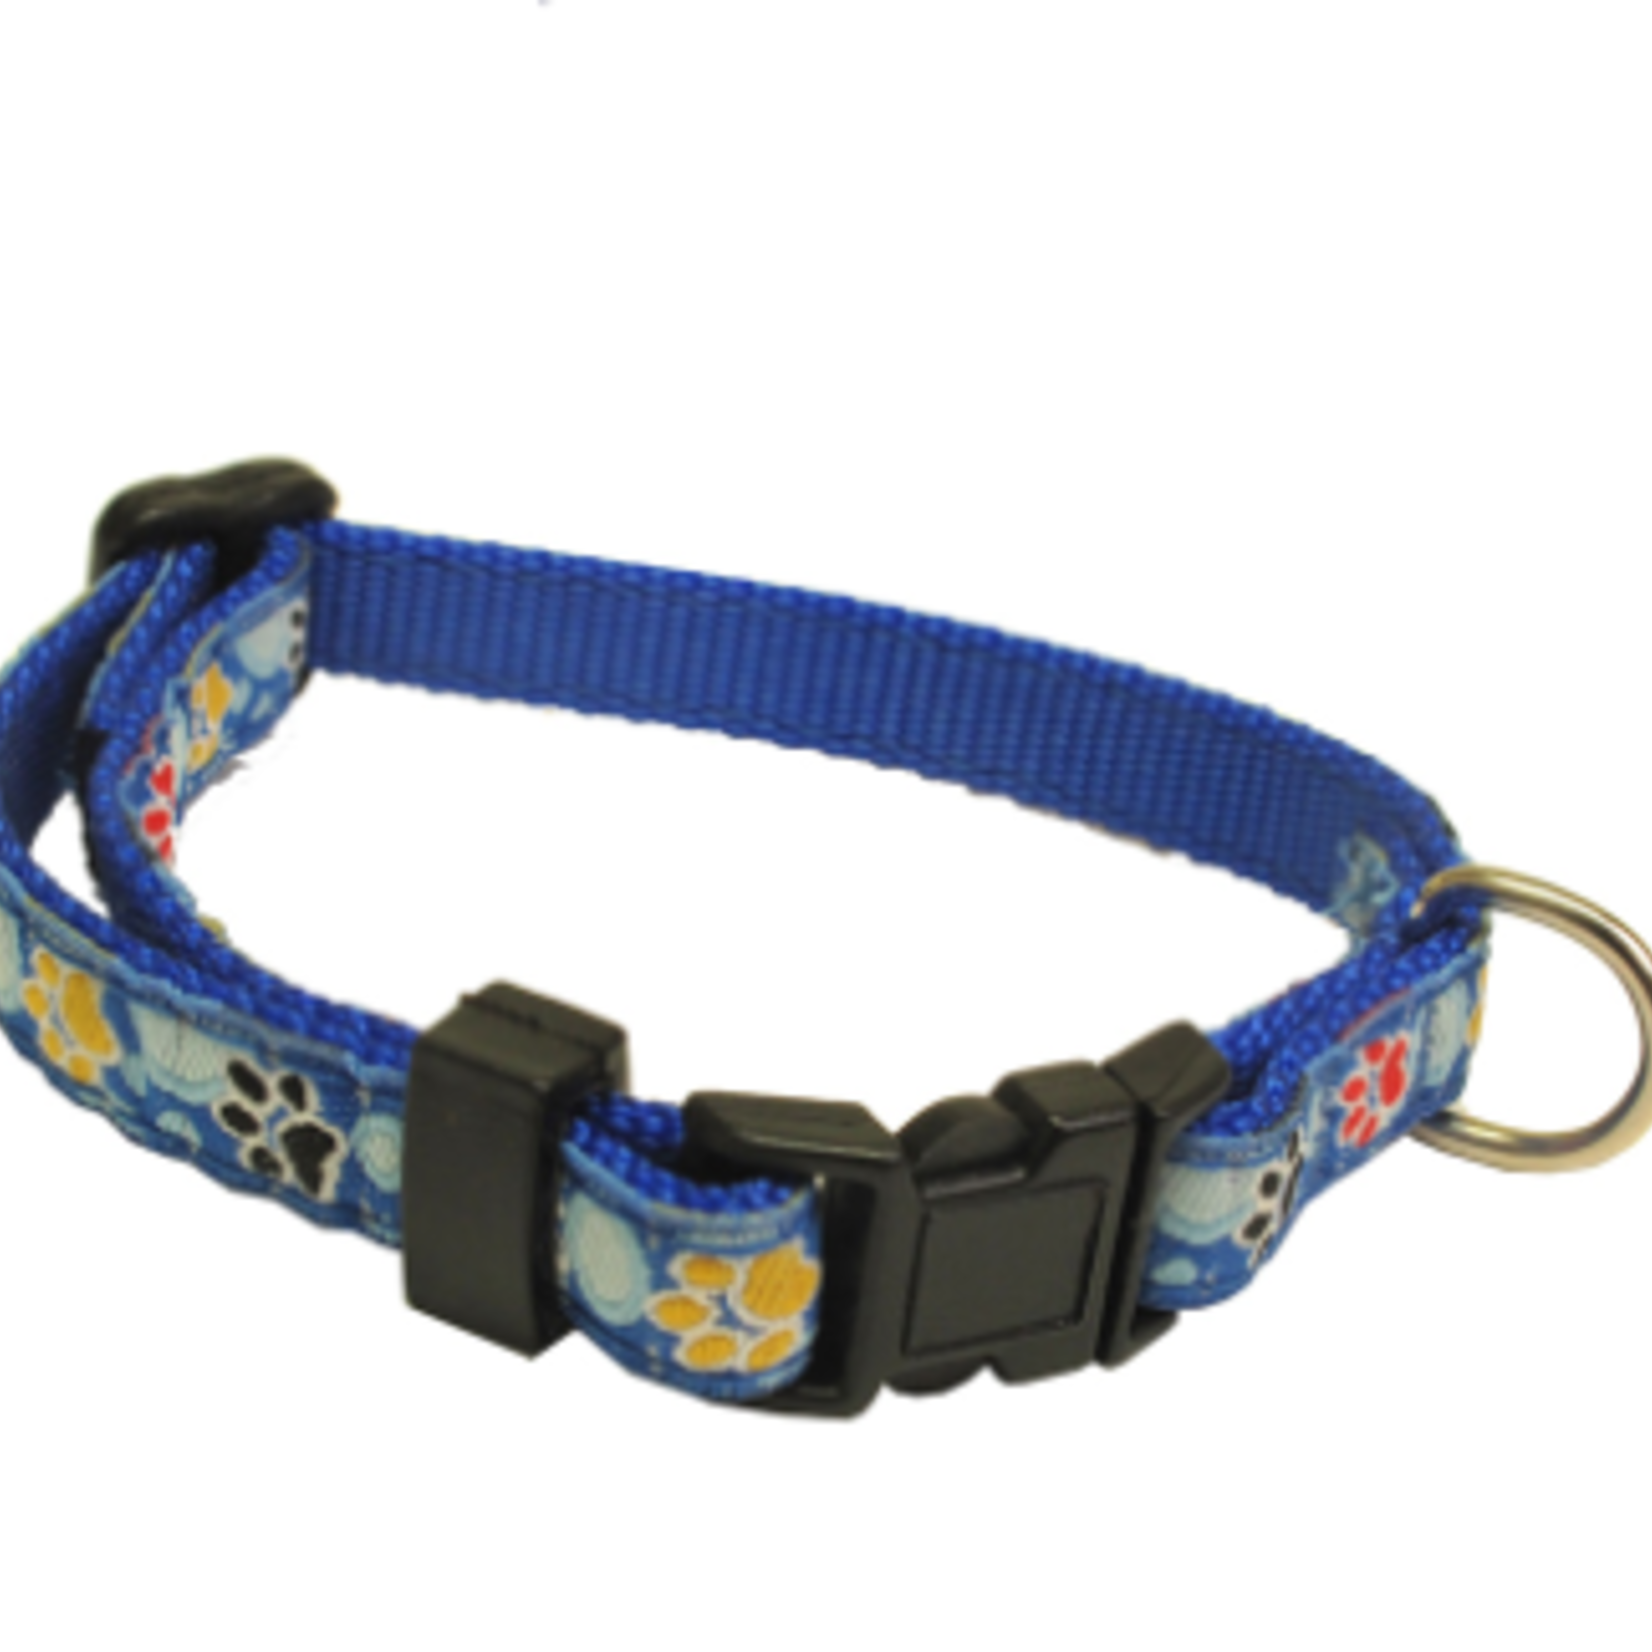 Hunter Brand Security Adjustable collar-from 8 to 11 in-blue paws